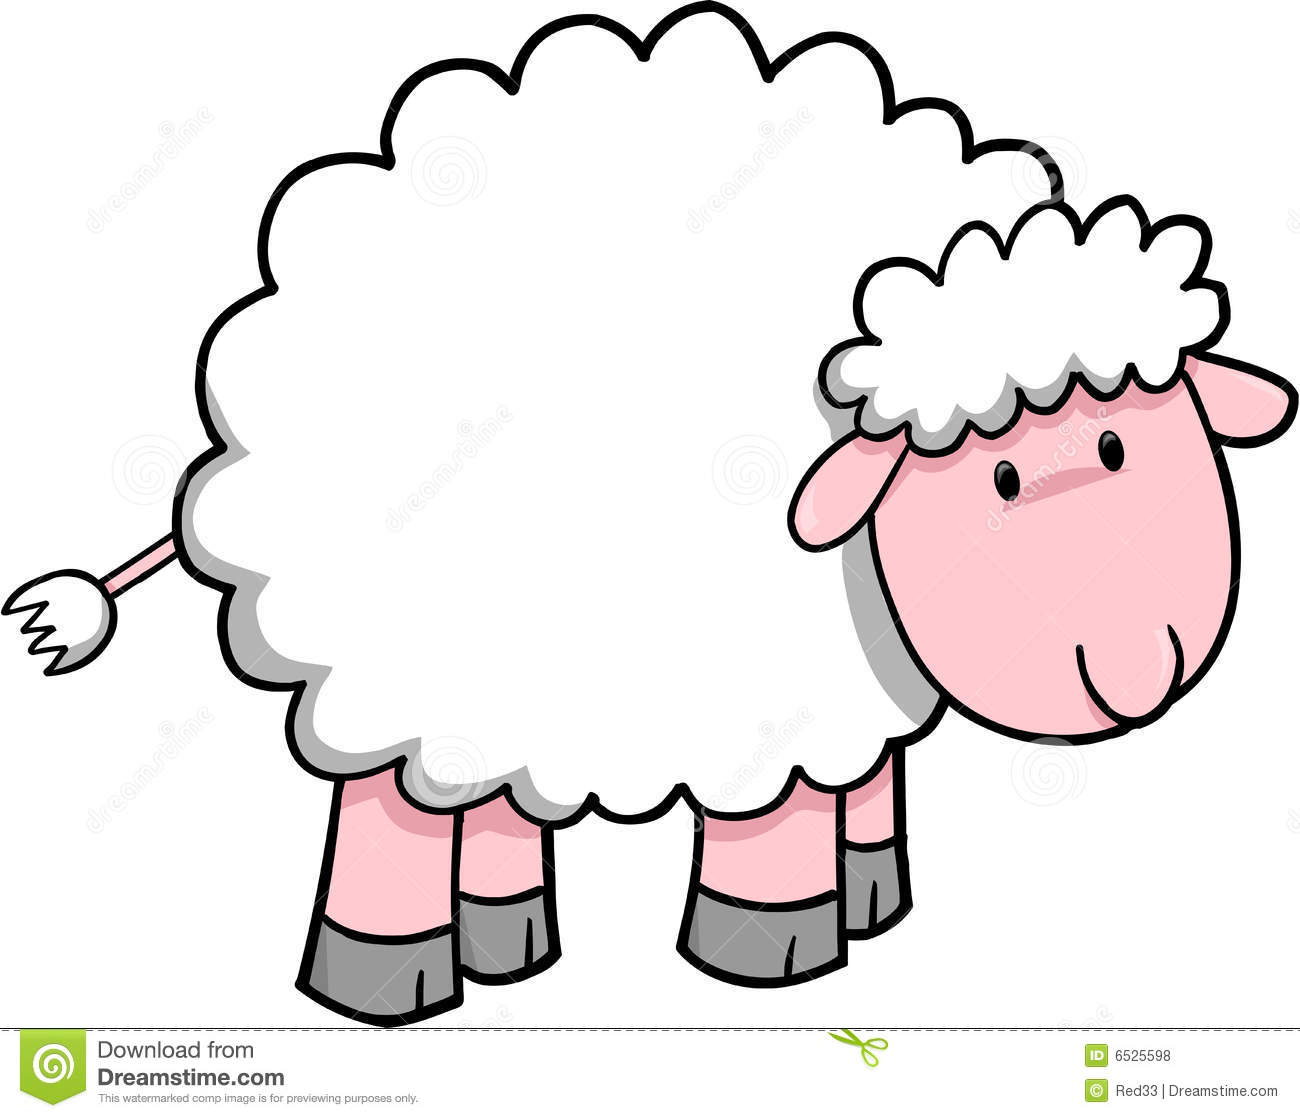 Baby Sheep Clipart Fun Timewebsite Clipart